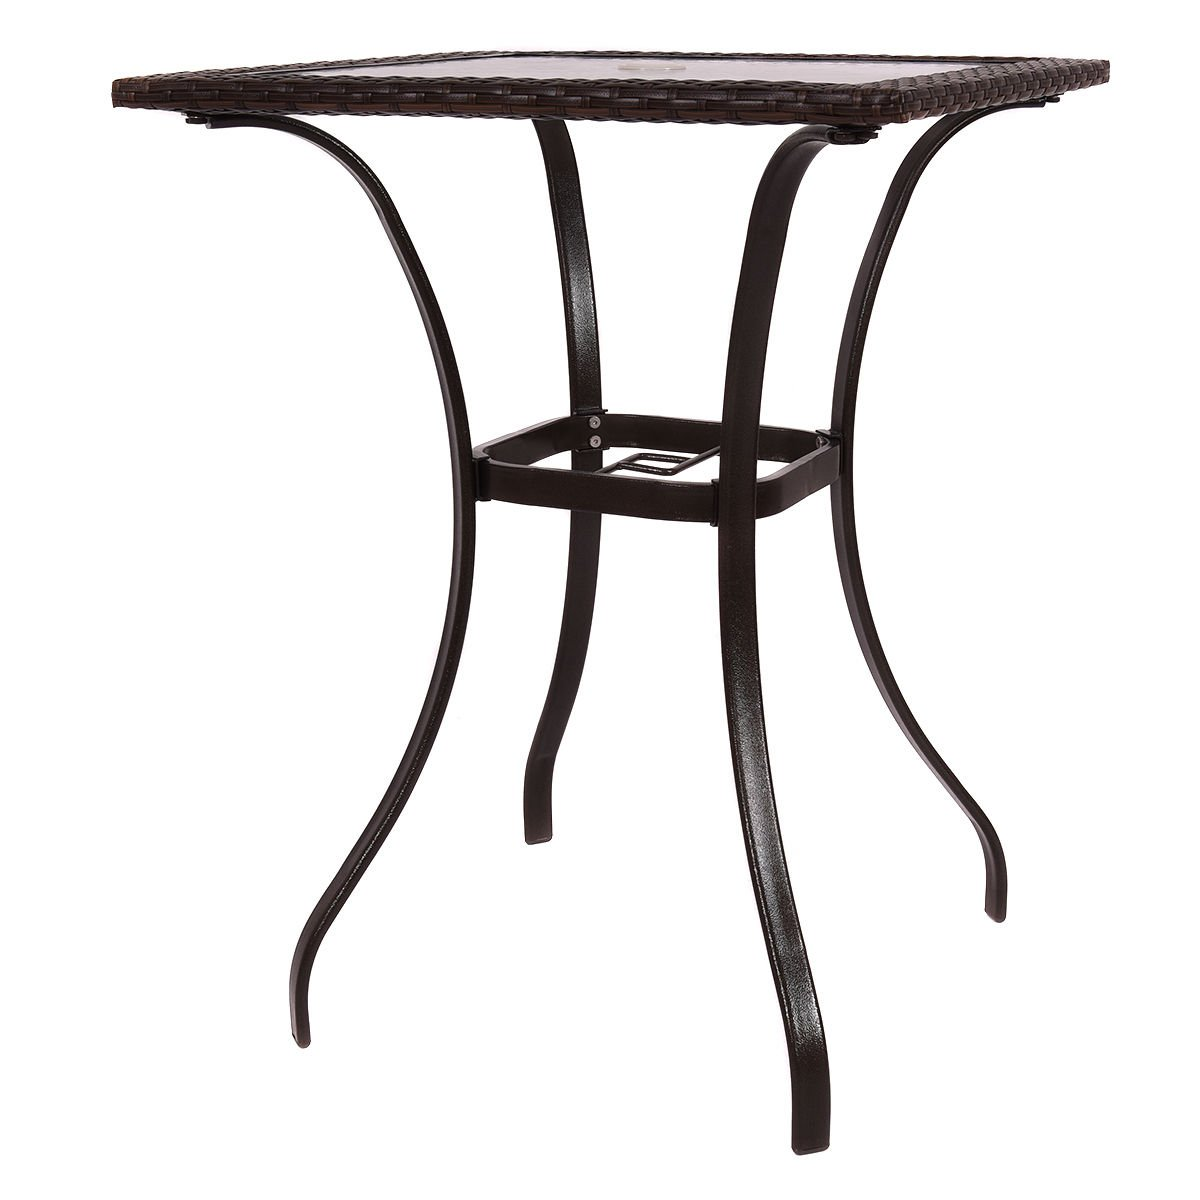 Outdoor patio rattan wicker bar square table glass top yard garden furniture new for Indoor and outdoor use.